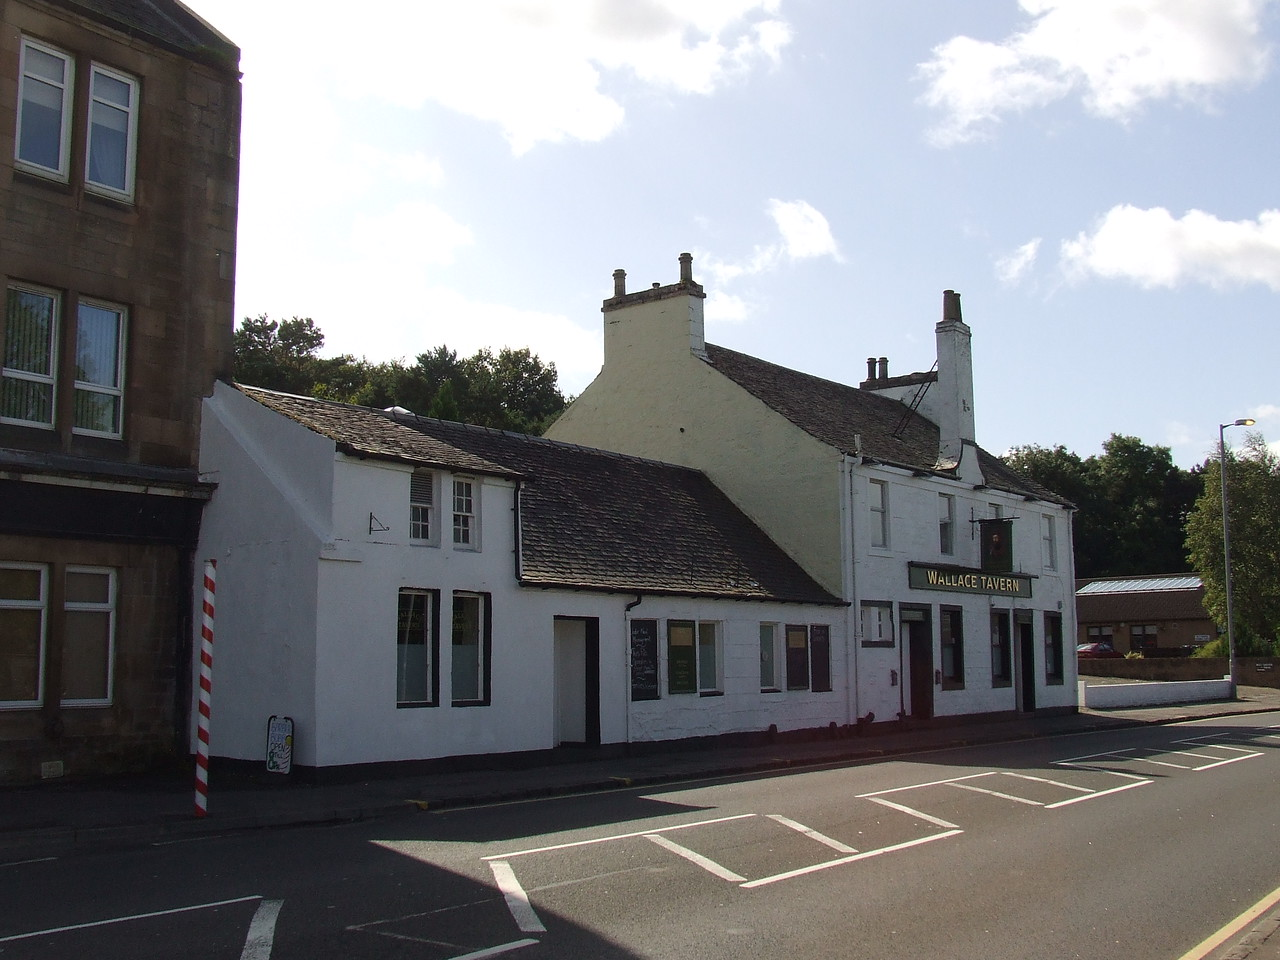 The Wallace Tavern in Main Road